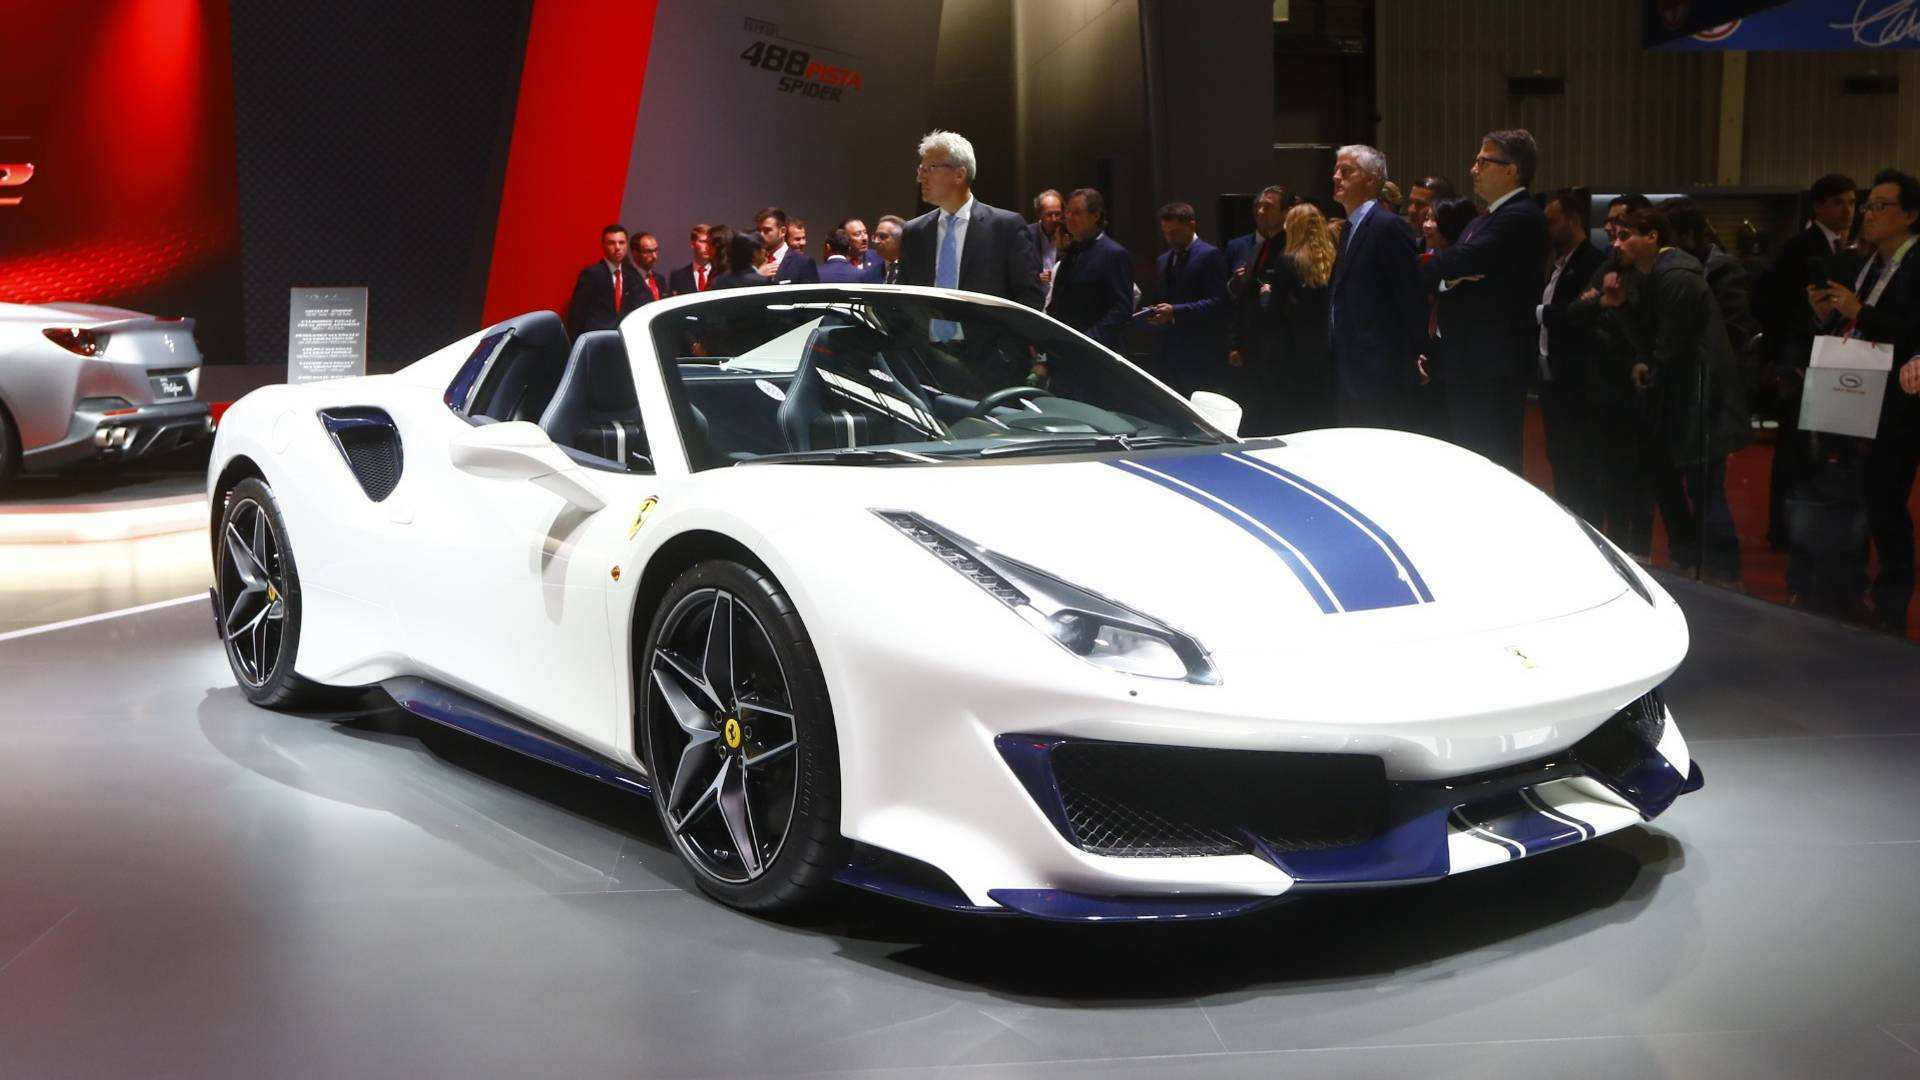 31 Gallery of 2019 Ferrari 488 Pista 2 Photos for 2019 Ferrari 488 Pista 2